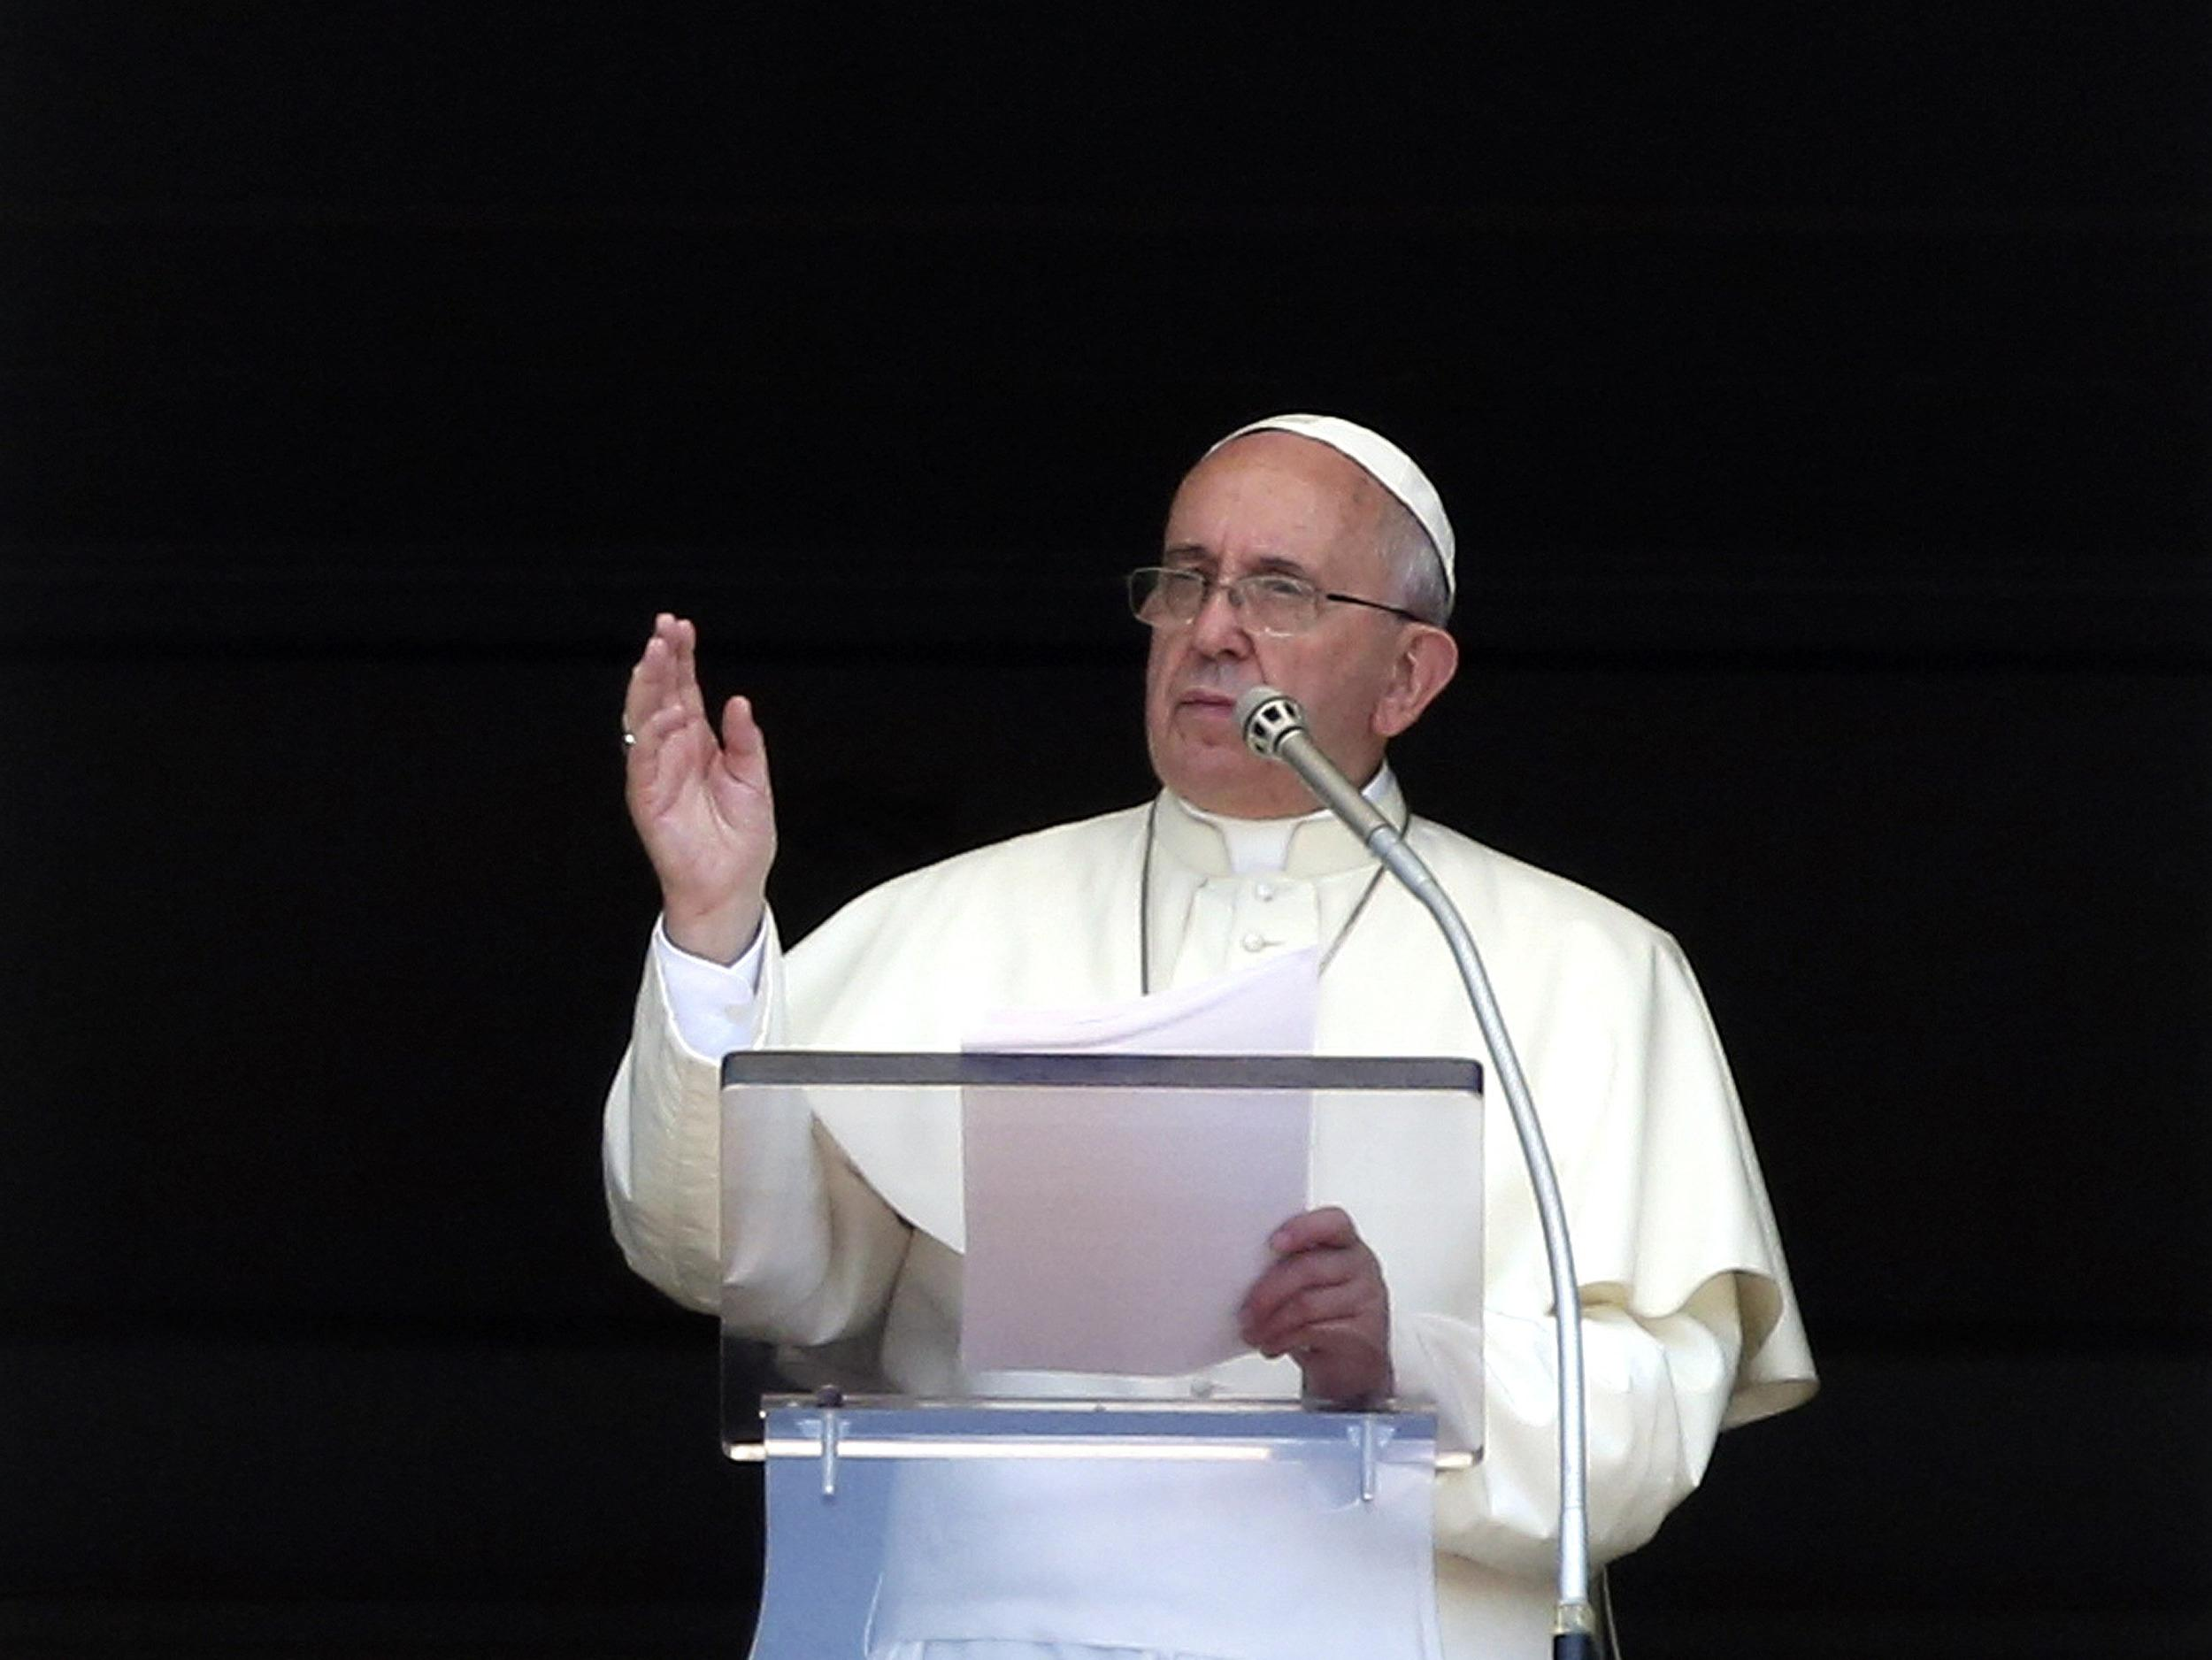 Image: Pope Francis speaks as he leads the Angelus prayer in Saint Peter's Square at the Vatican